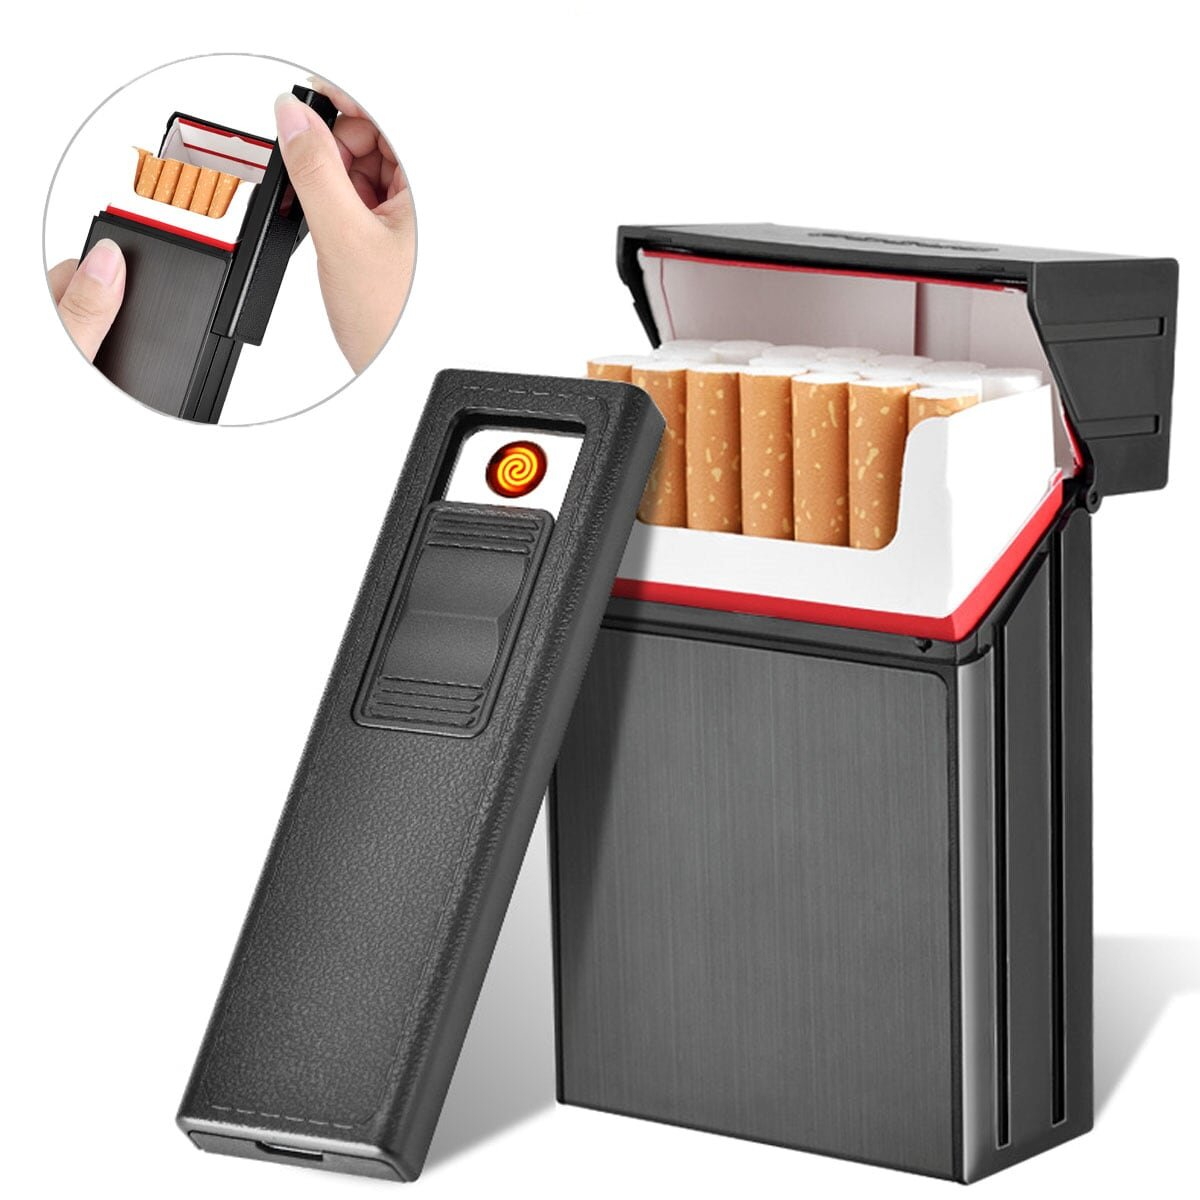 LORWING Cigarette Case Module with Electric Lighter USB Separable Rechargeable for Whole Package Cigarettes 20pcs King Size